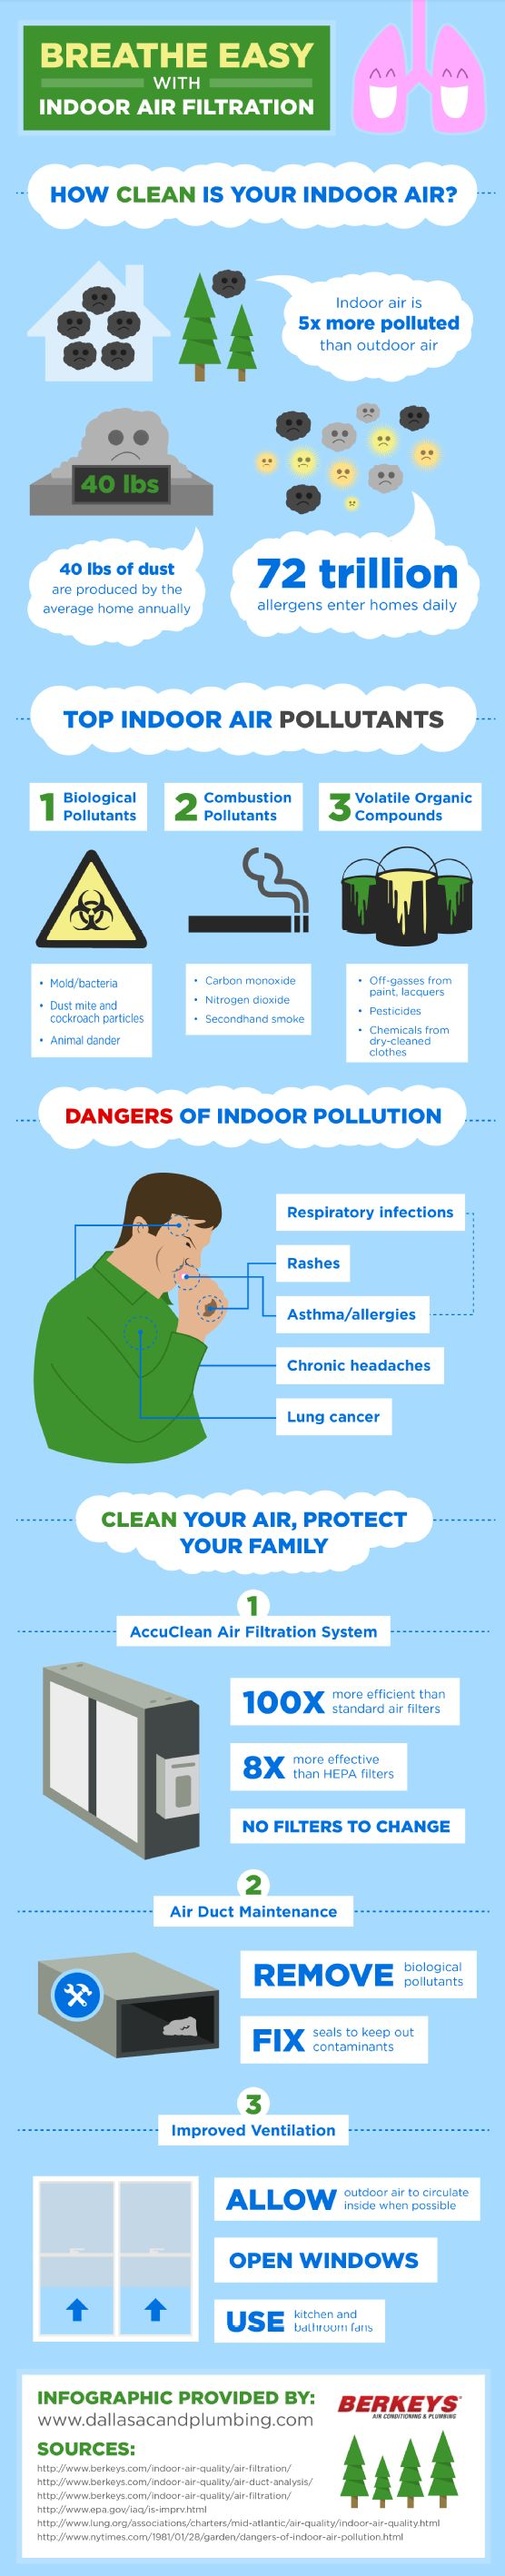 When performing regular air duct maintenance, a professional can remove biological pollutants and fix seals to keep out contaminants. Take a look at this AC repair infographic for tips to help you improve your home's indoor air quality.